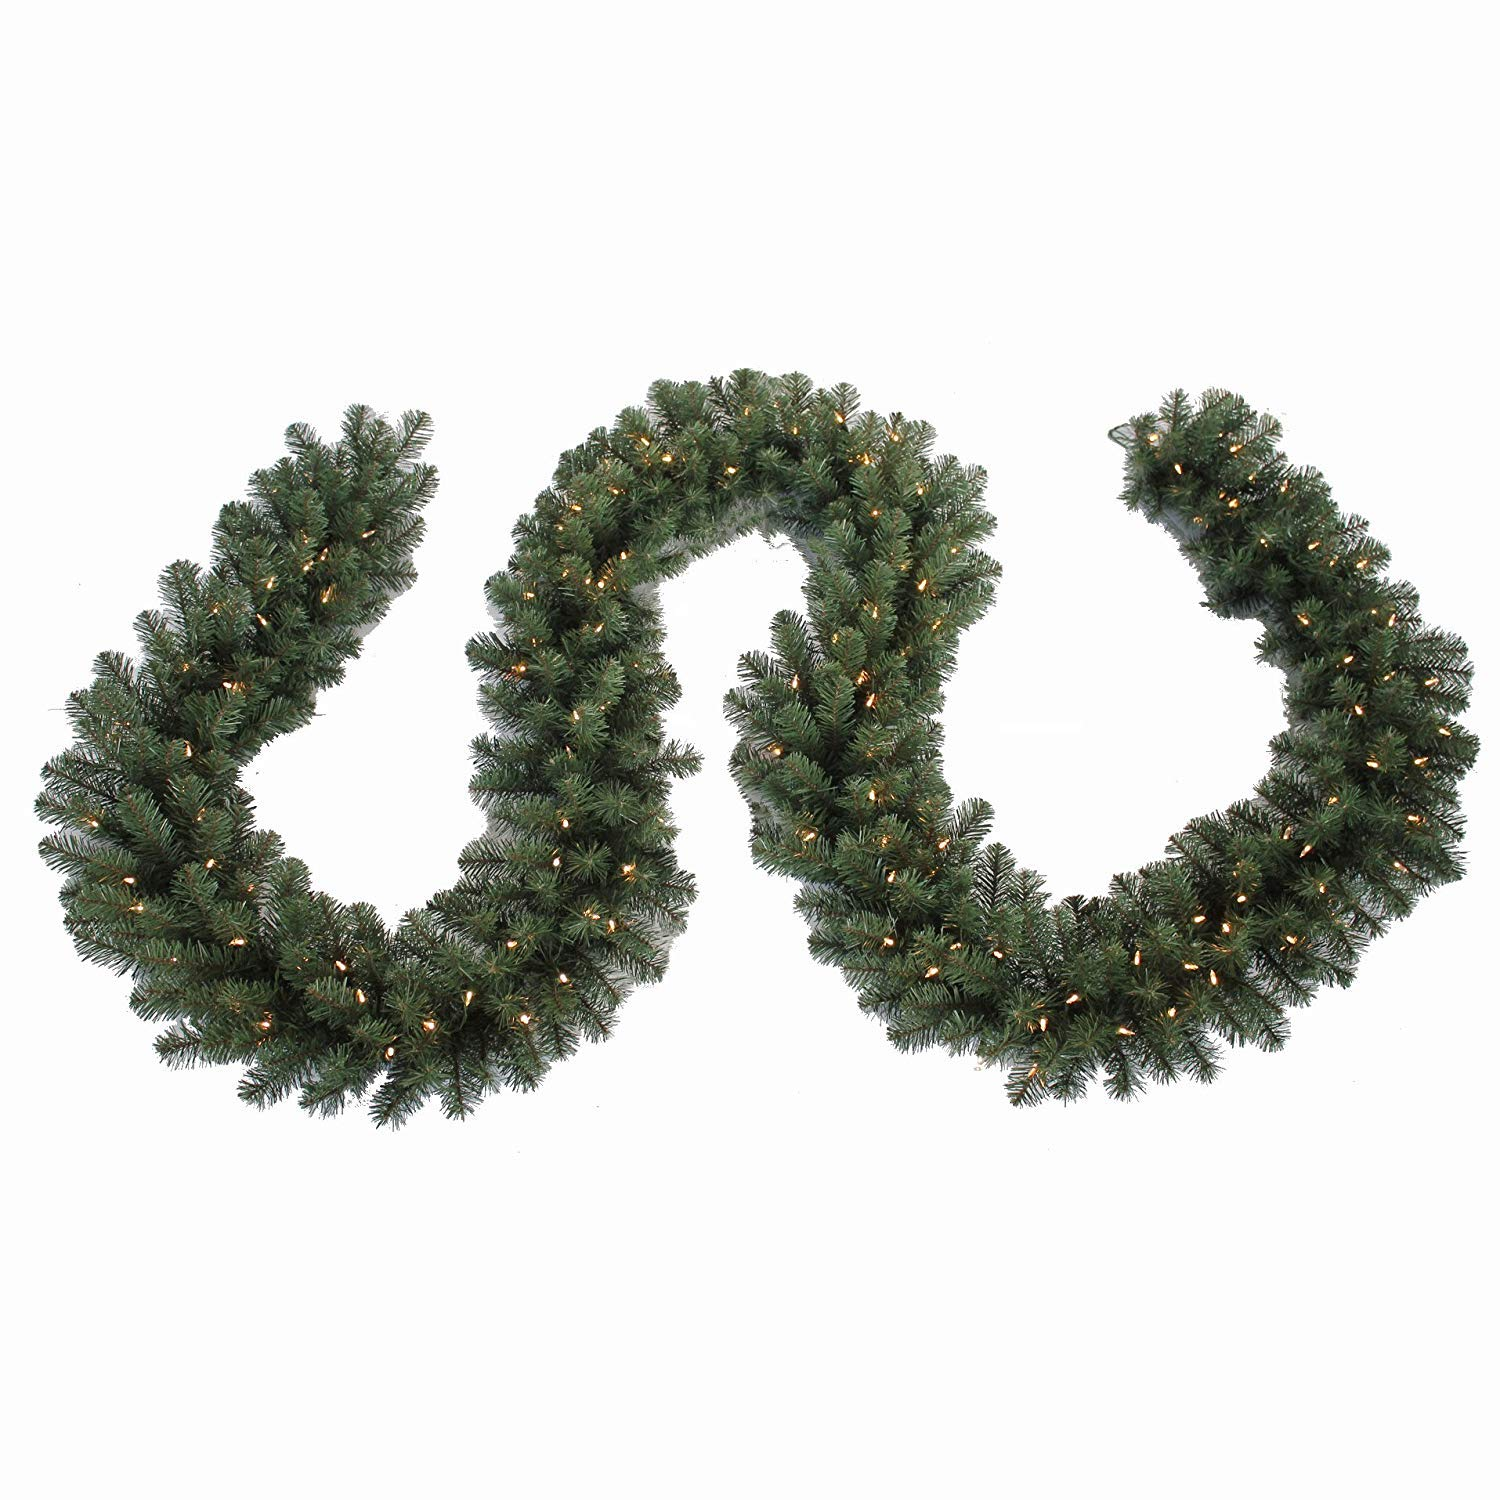 North Pole Originals 15' Long Pre-Lit, Lighted Christmas Garland - 500 Tips, 150 T5 LED Lights - UL Rated for Indoor or Outdoor use (Warm White)